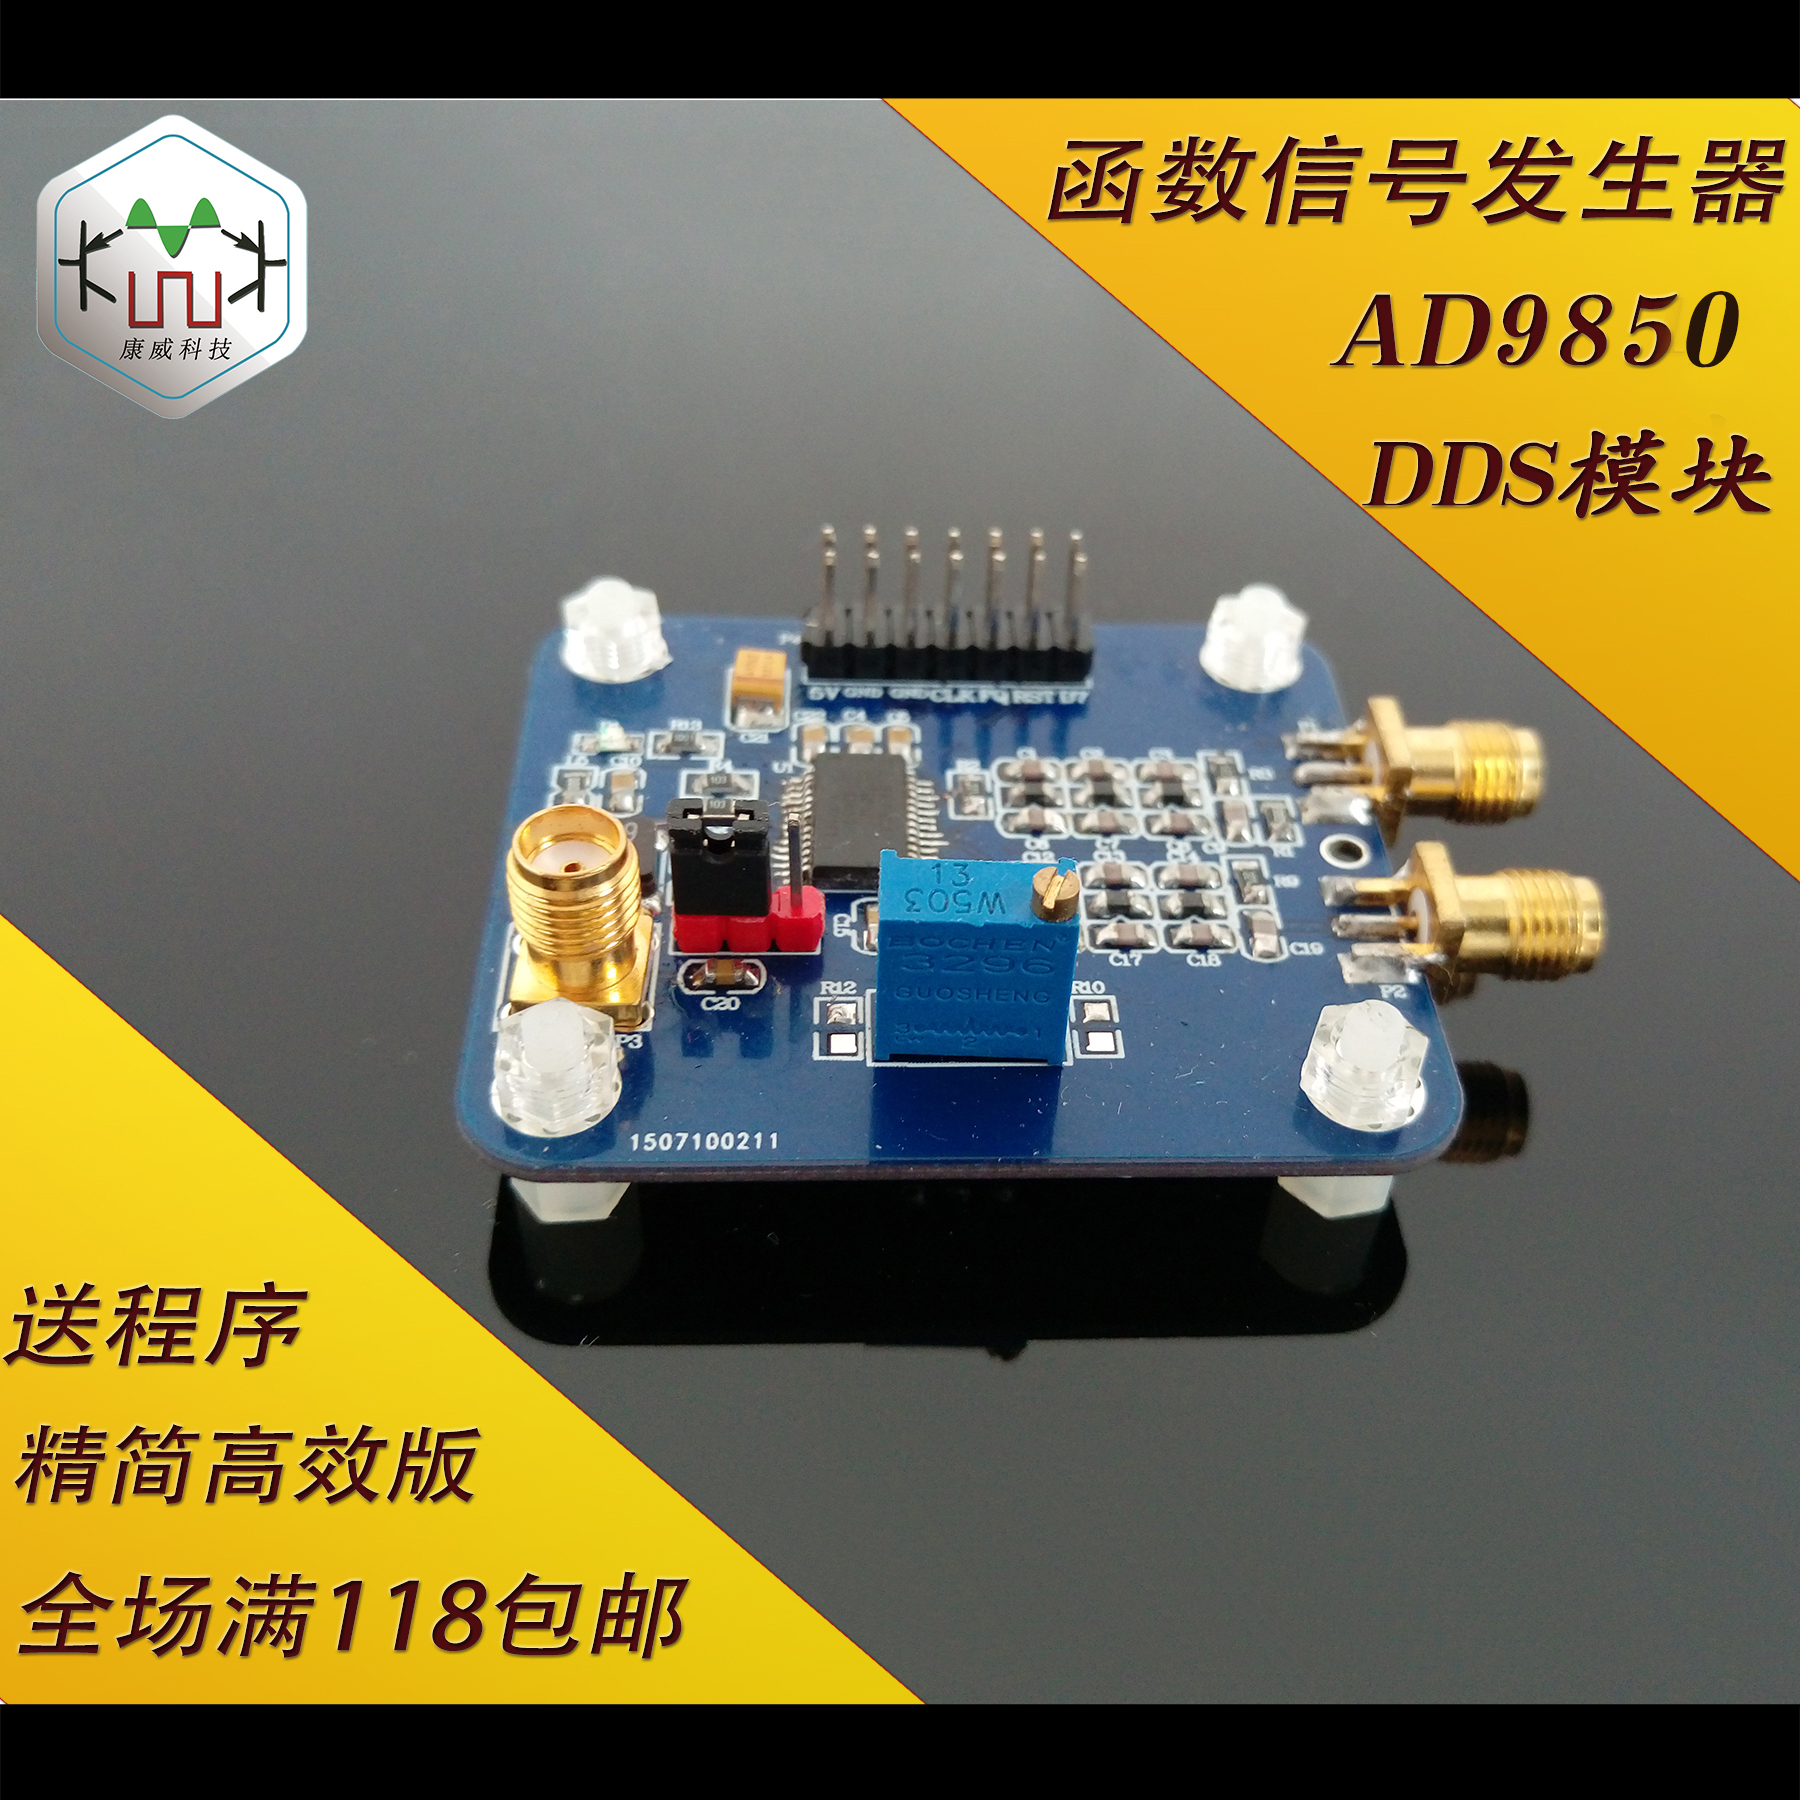 AD9850 module DDS function signal generator to send the program compatible with 9851 simplified version produino ad9850 40mhz dds signal generator module blue